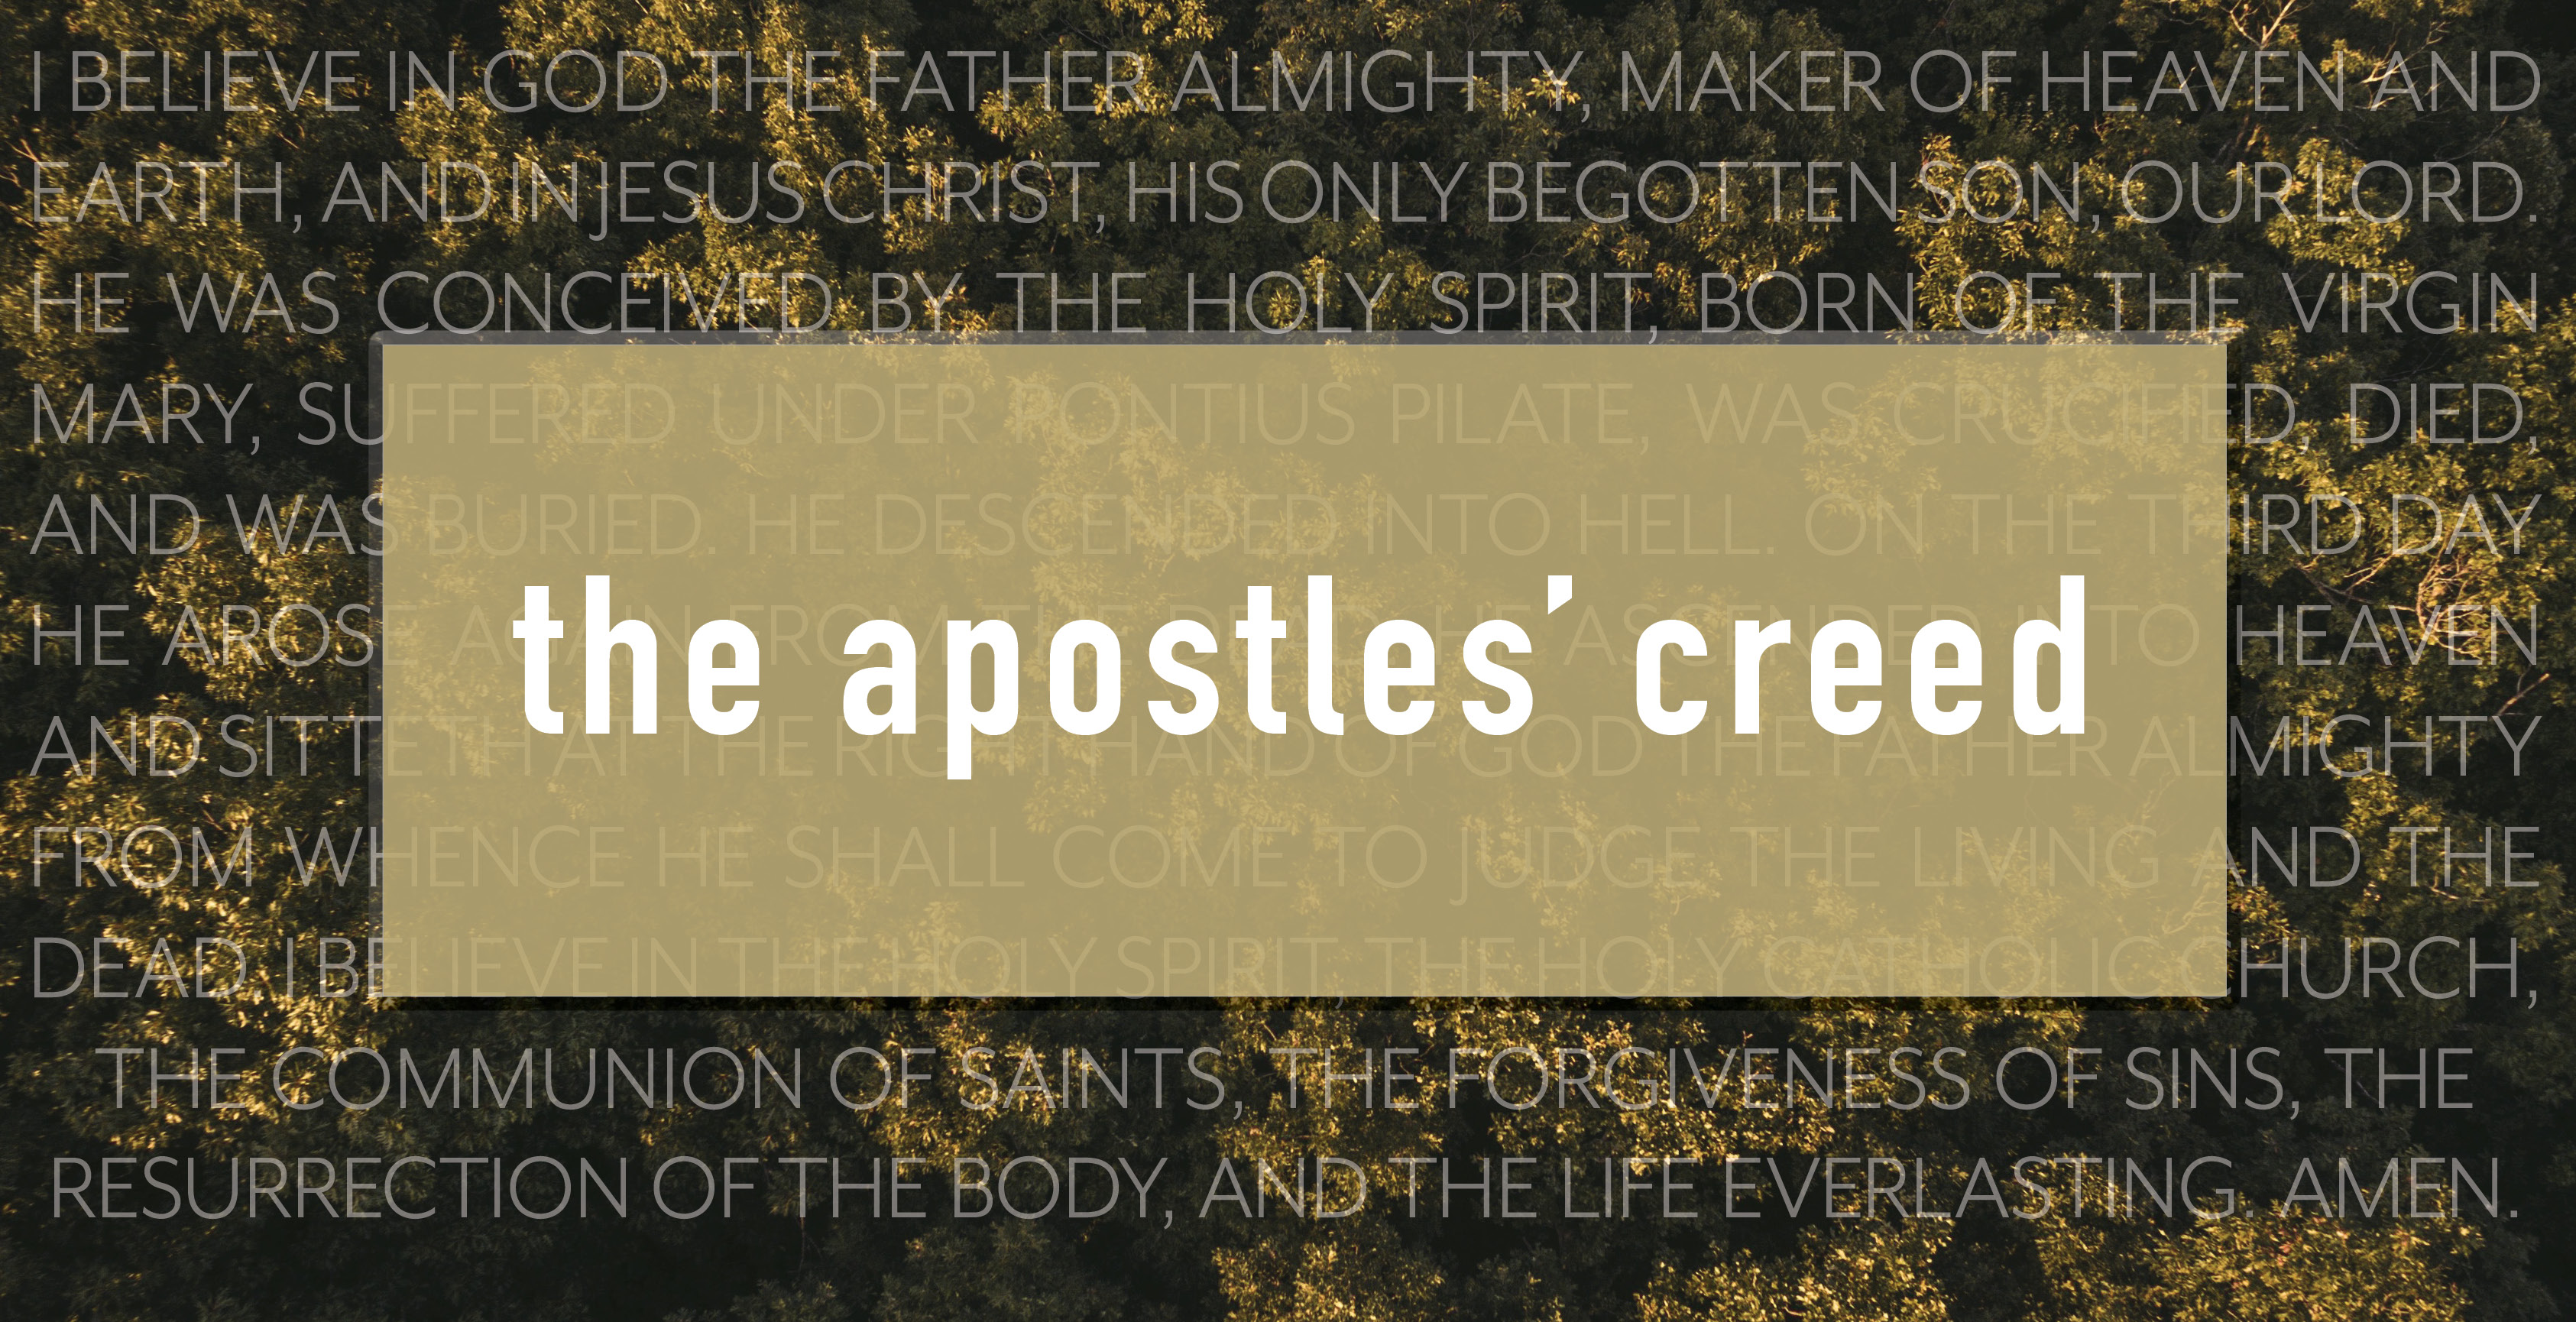 the apostles creed The apostles' creed: a guide to the ancient catechism (christian essentials) - kindle edition by ben myers download it once and read it on your kindle device, pc, phones or tablets.